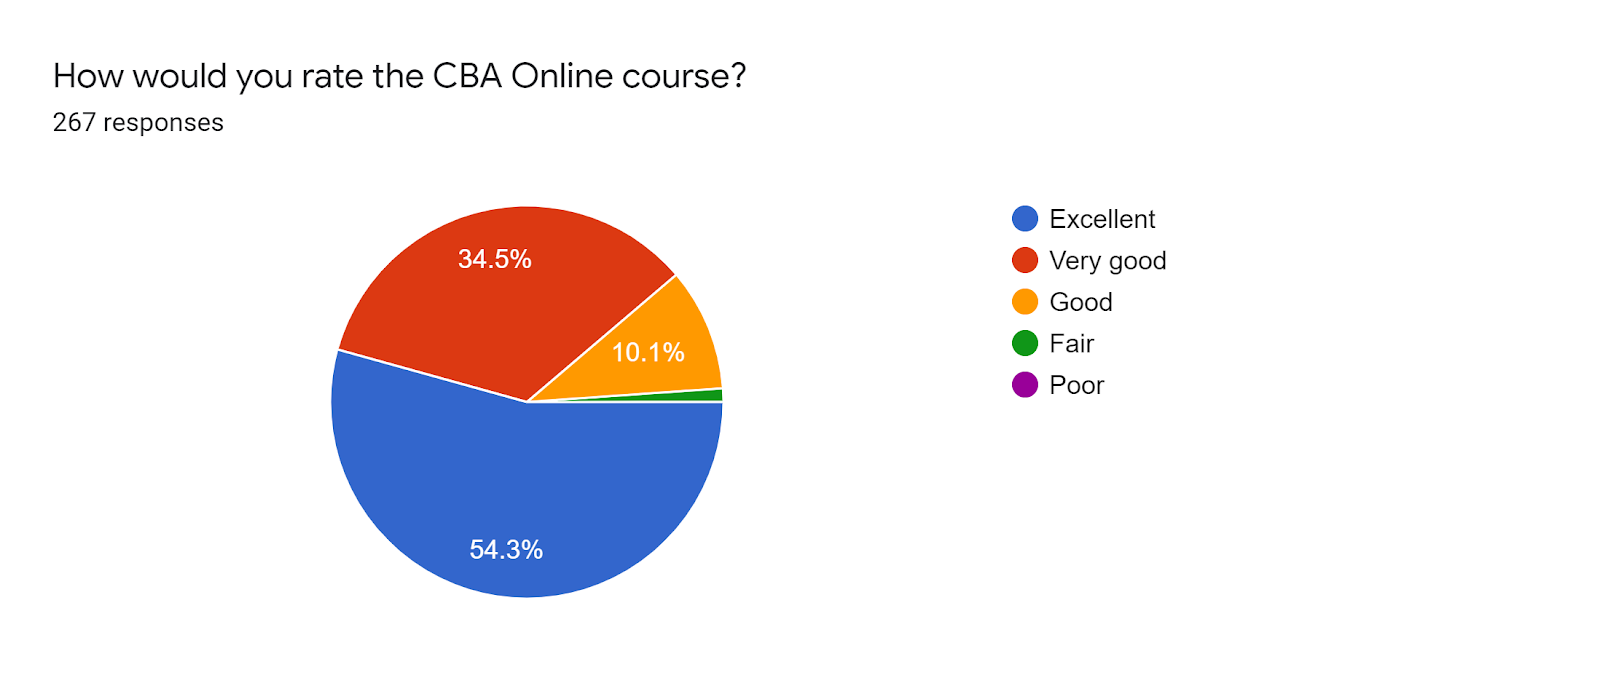 Forms response chart. Question title: How would you rate the CBA Online course?. Number of responses: 267 responses.